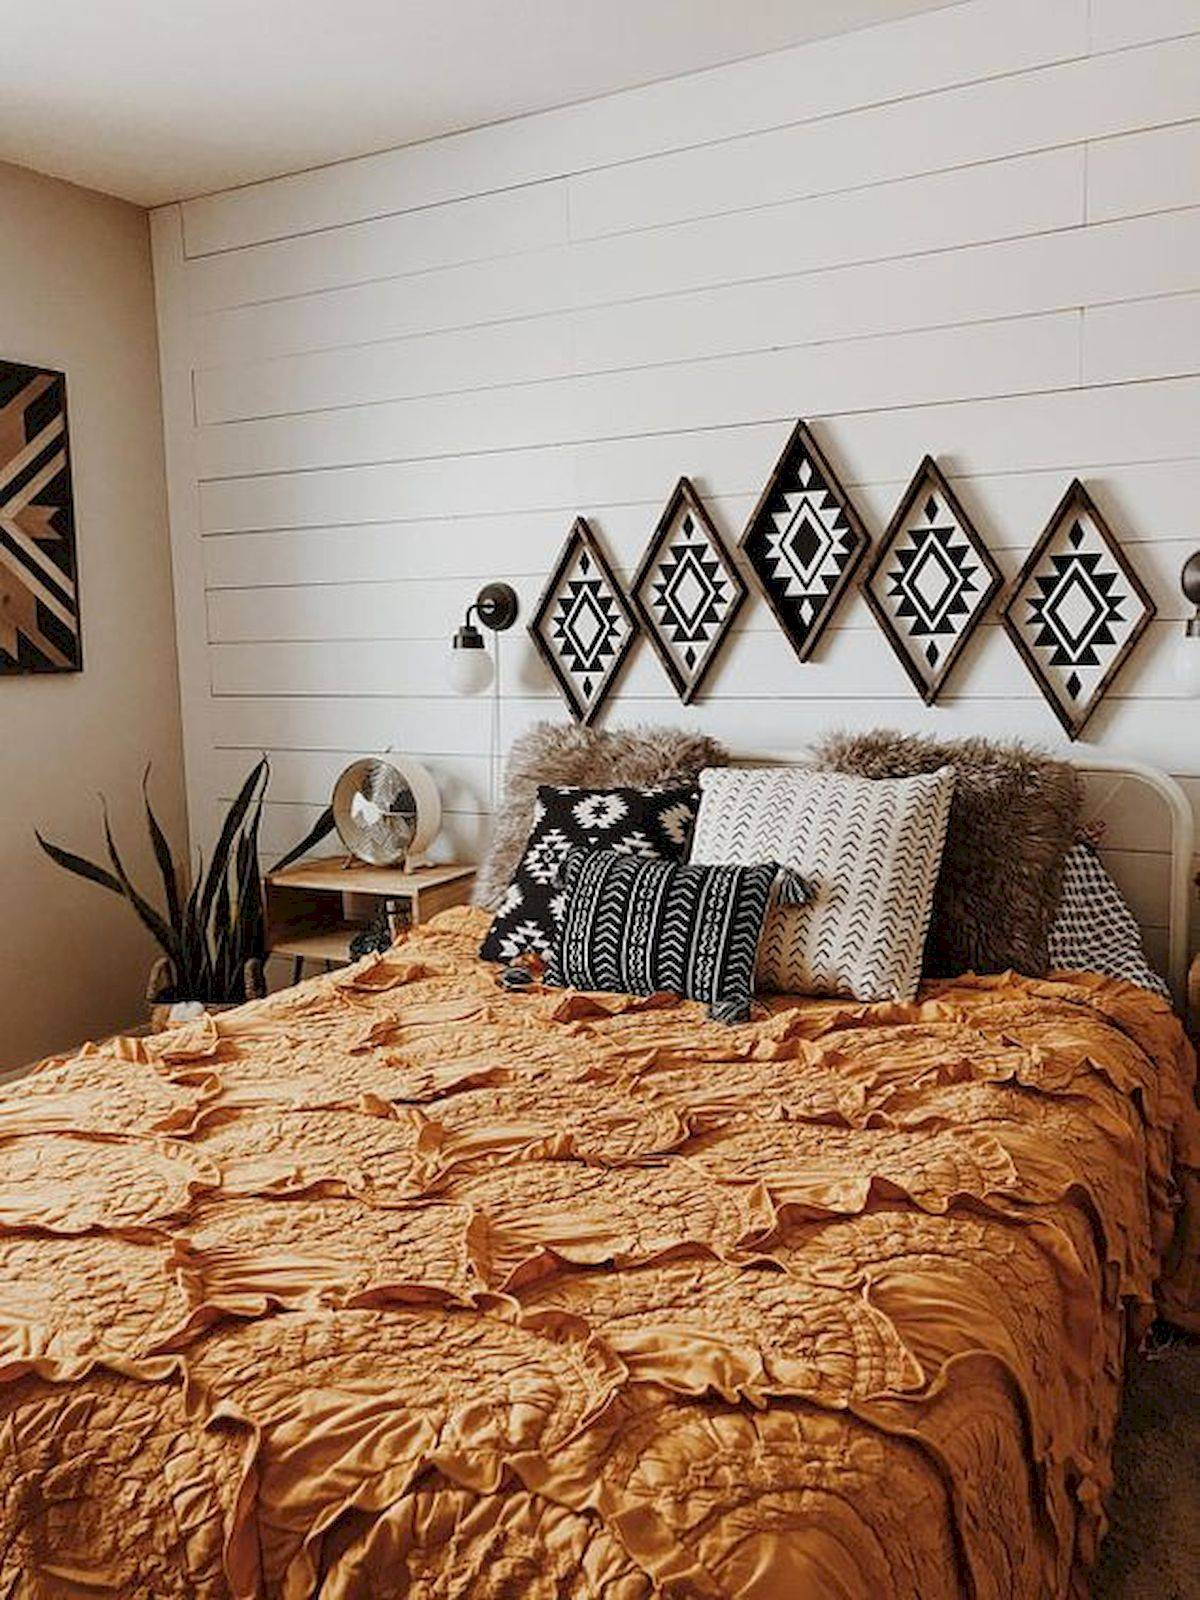 20 Popular Aesthetic Bedroom Ideas and Remodel 2